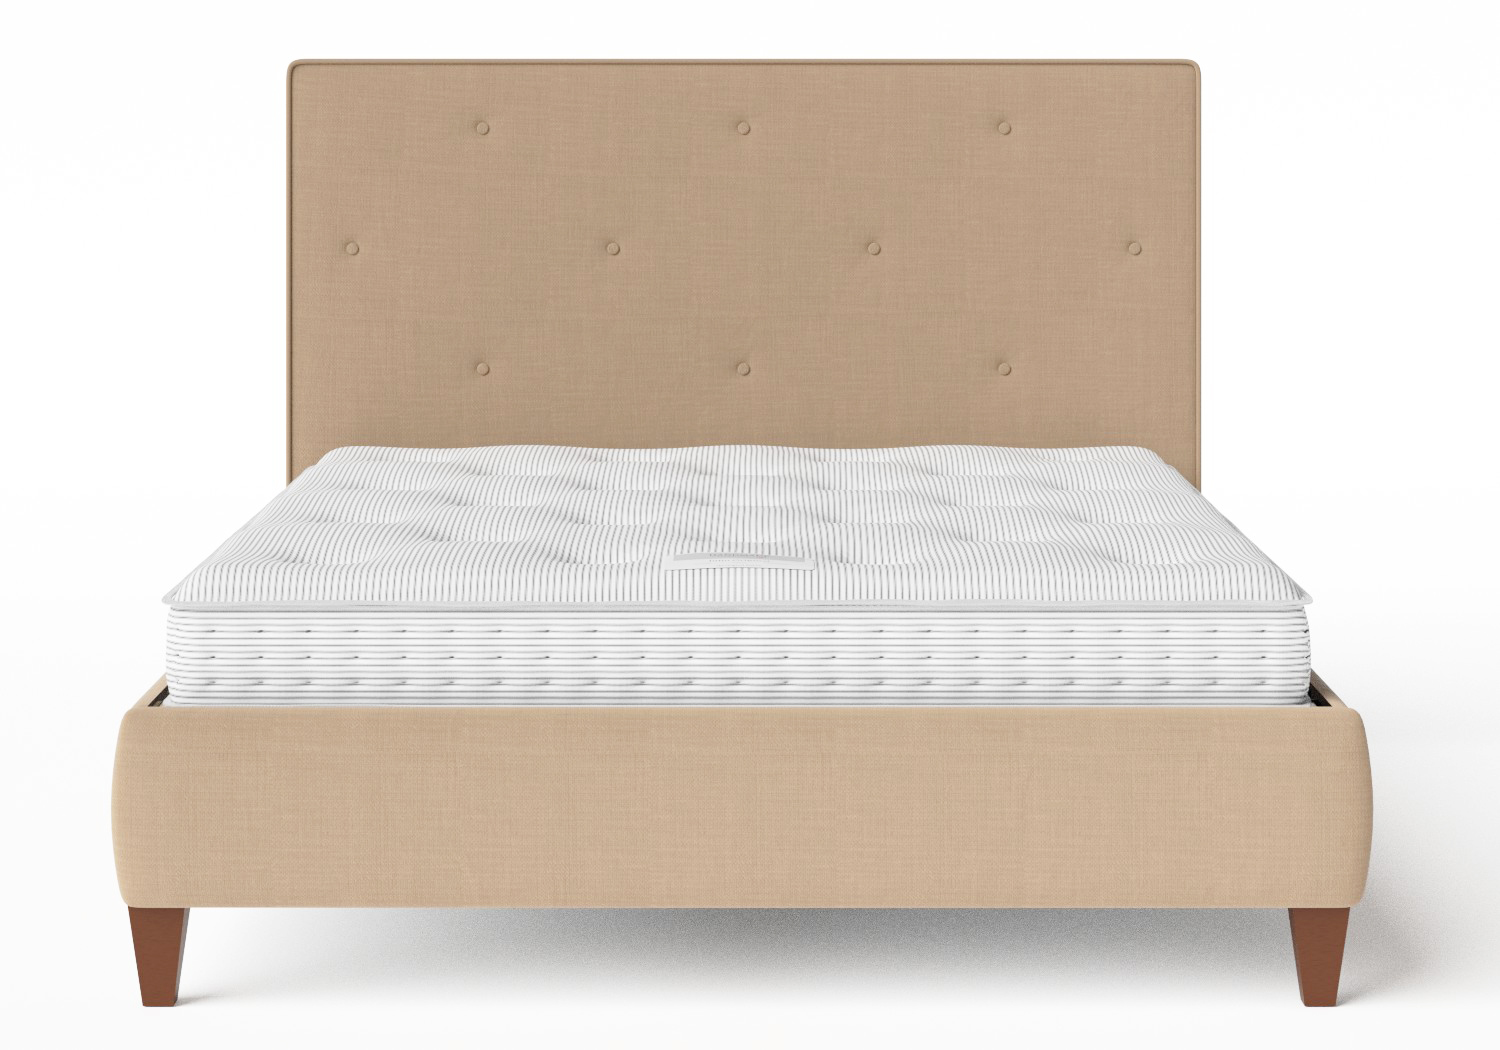 Yushan Upholstered Bed in Straw fabric with buttoning shown with Juno 1 mattress